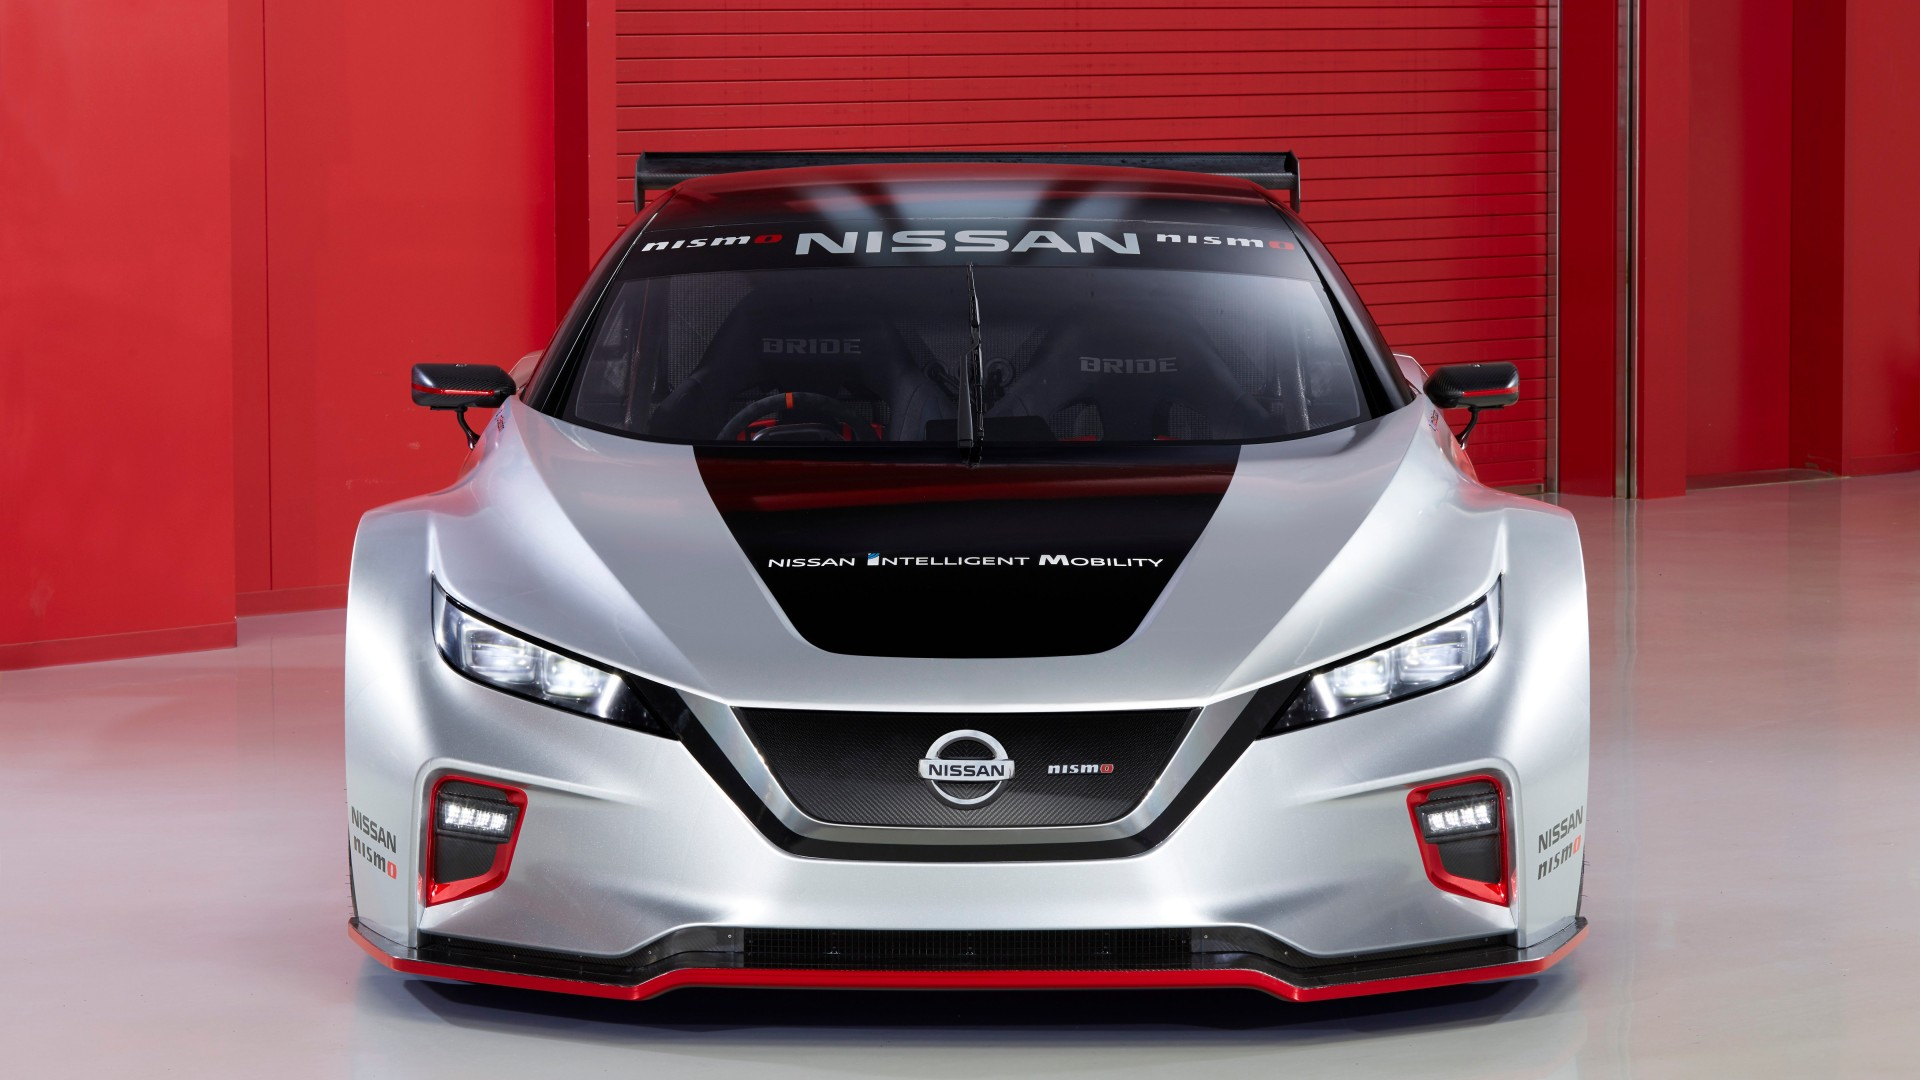 Wallpaper Nissan Leaf Nismo Rc 2018 Cars Electric Cars